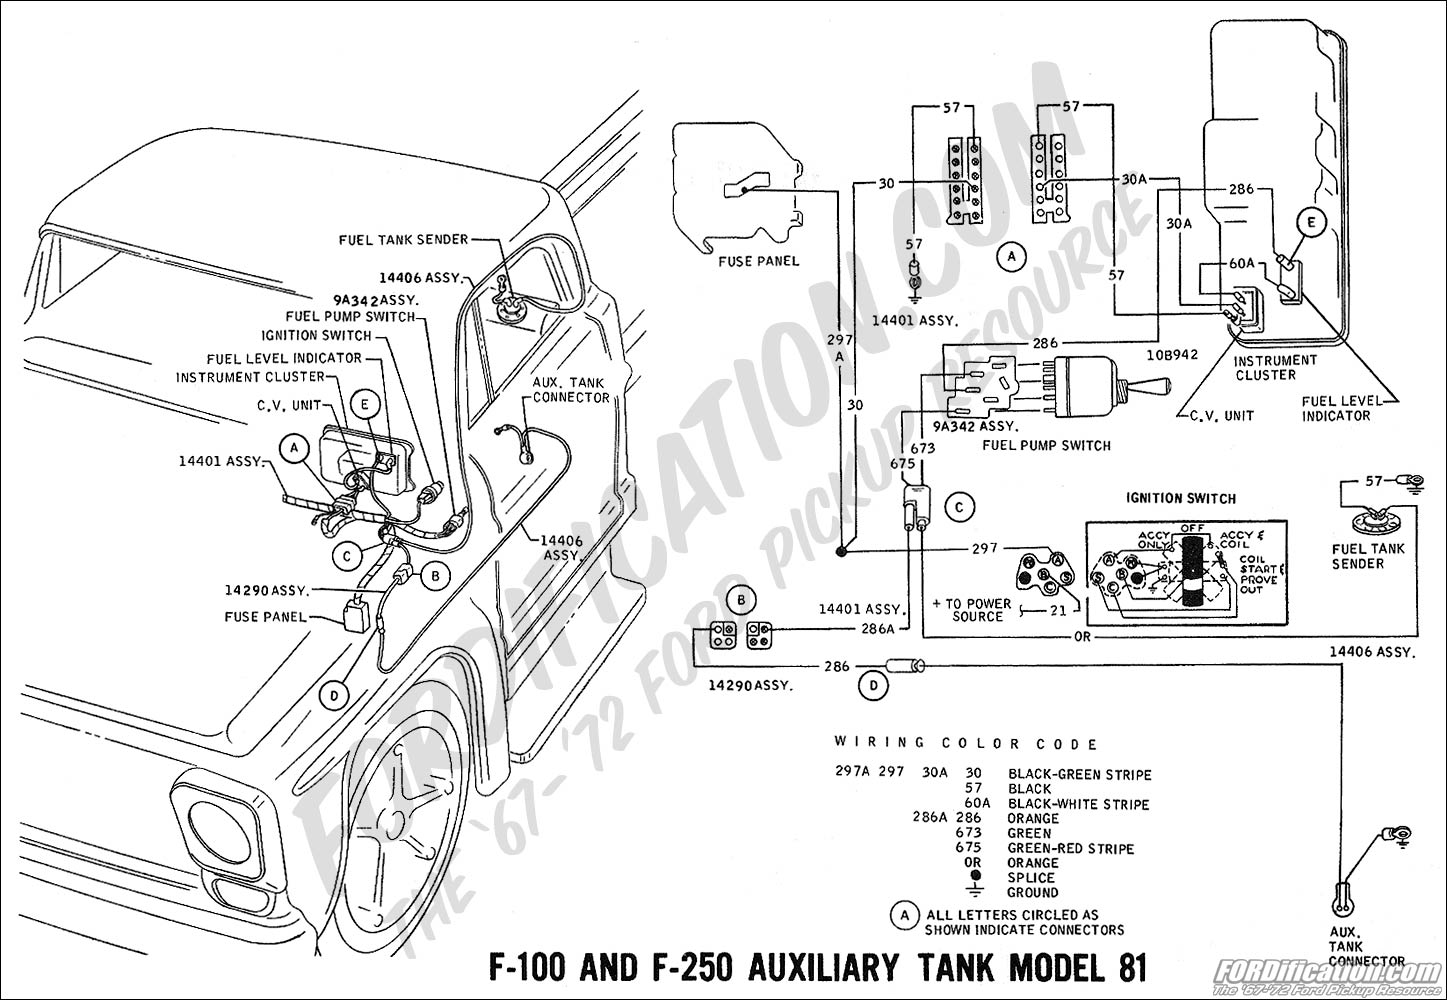 2009 Ford F 250 Fuse Diagram Further 1996 Ford F 250 Fuse Box Diagram